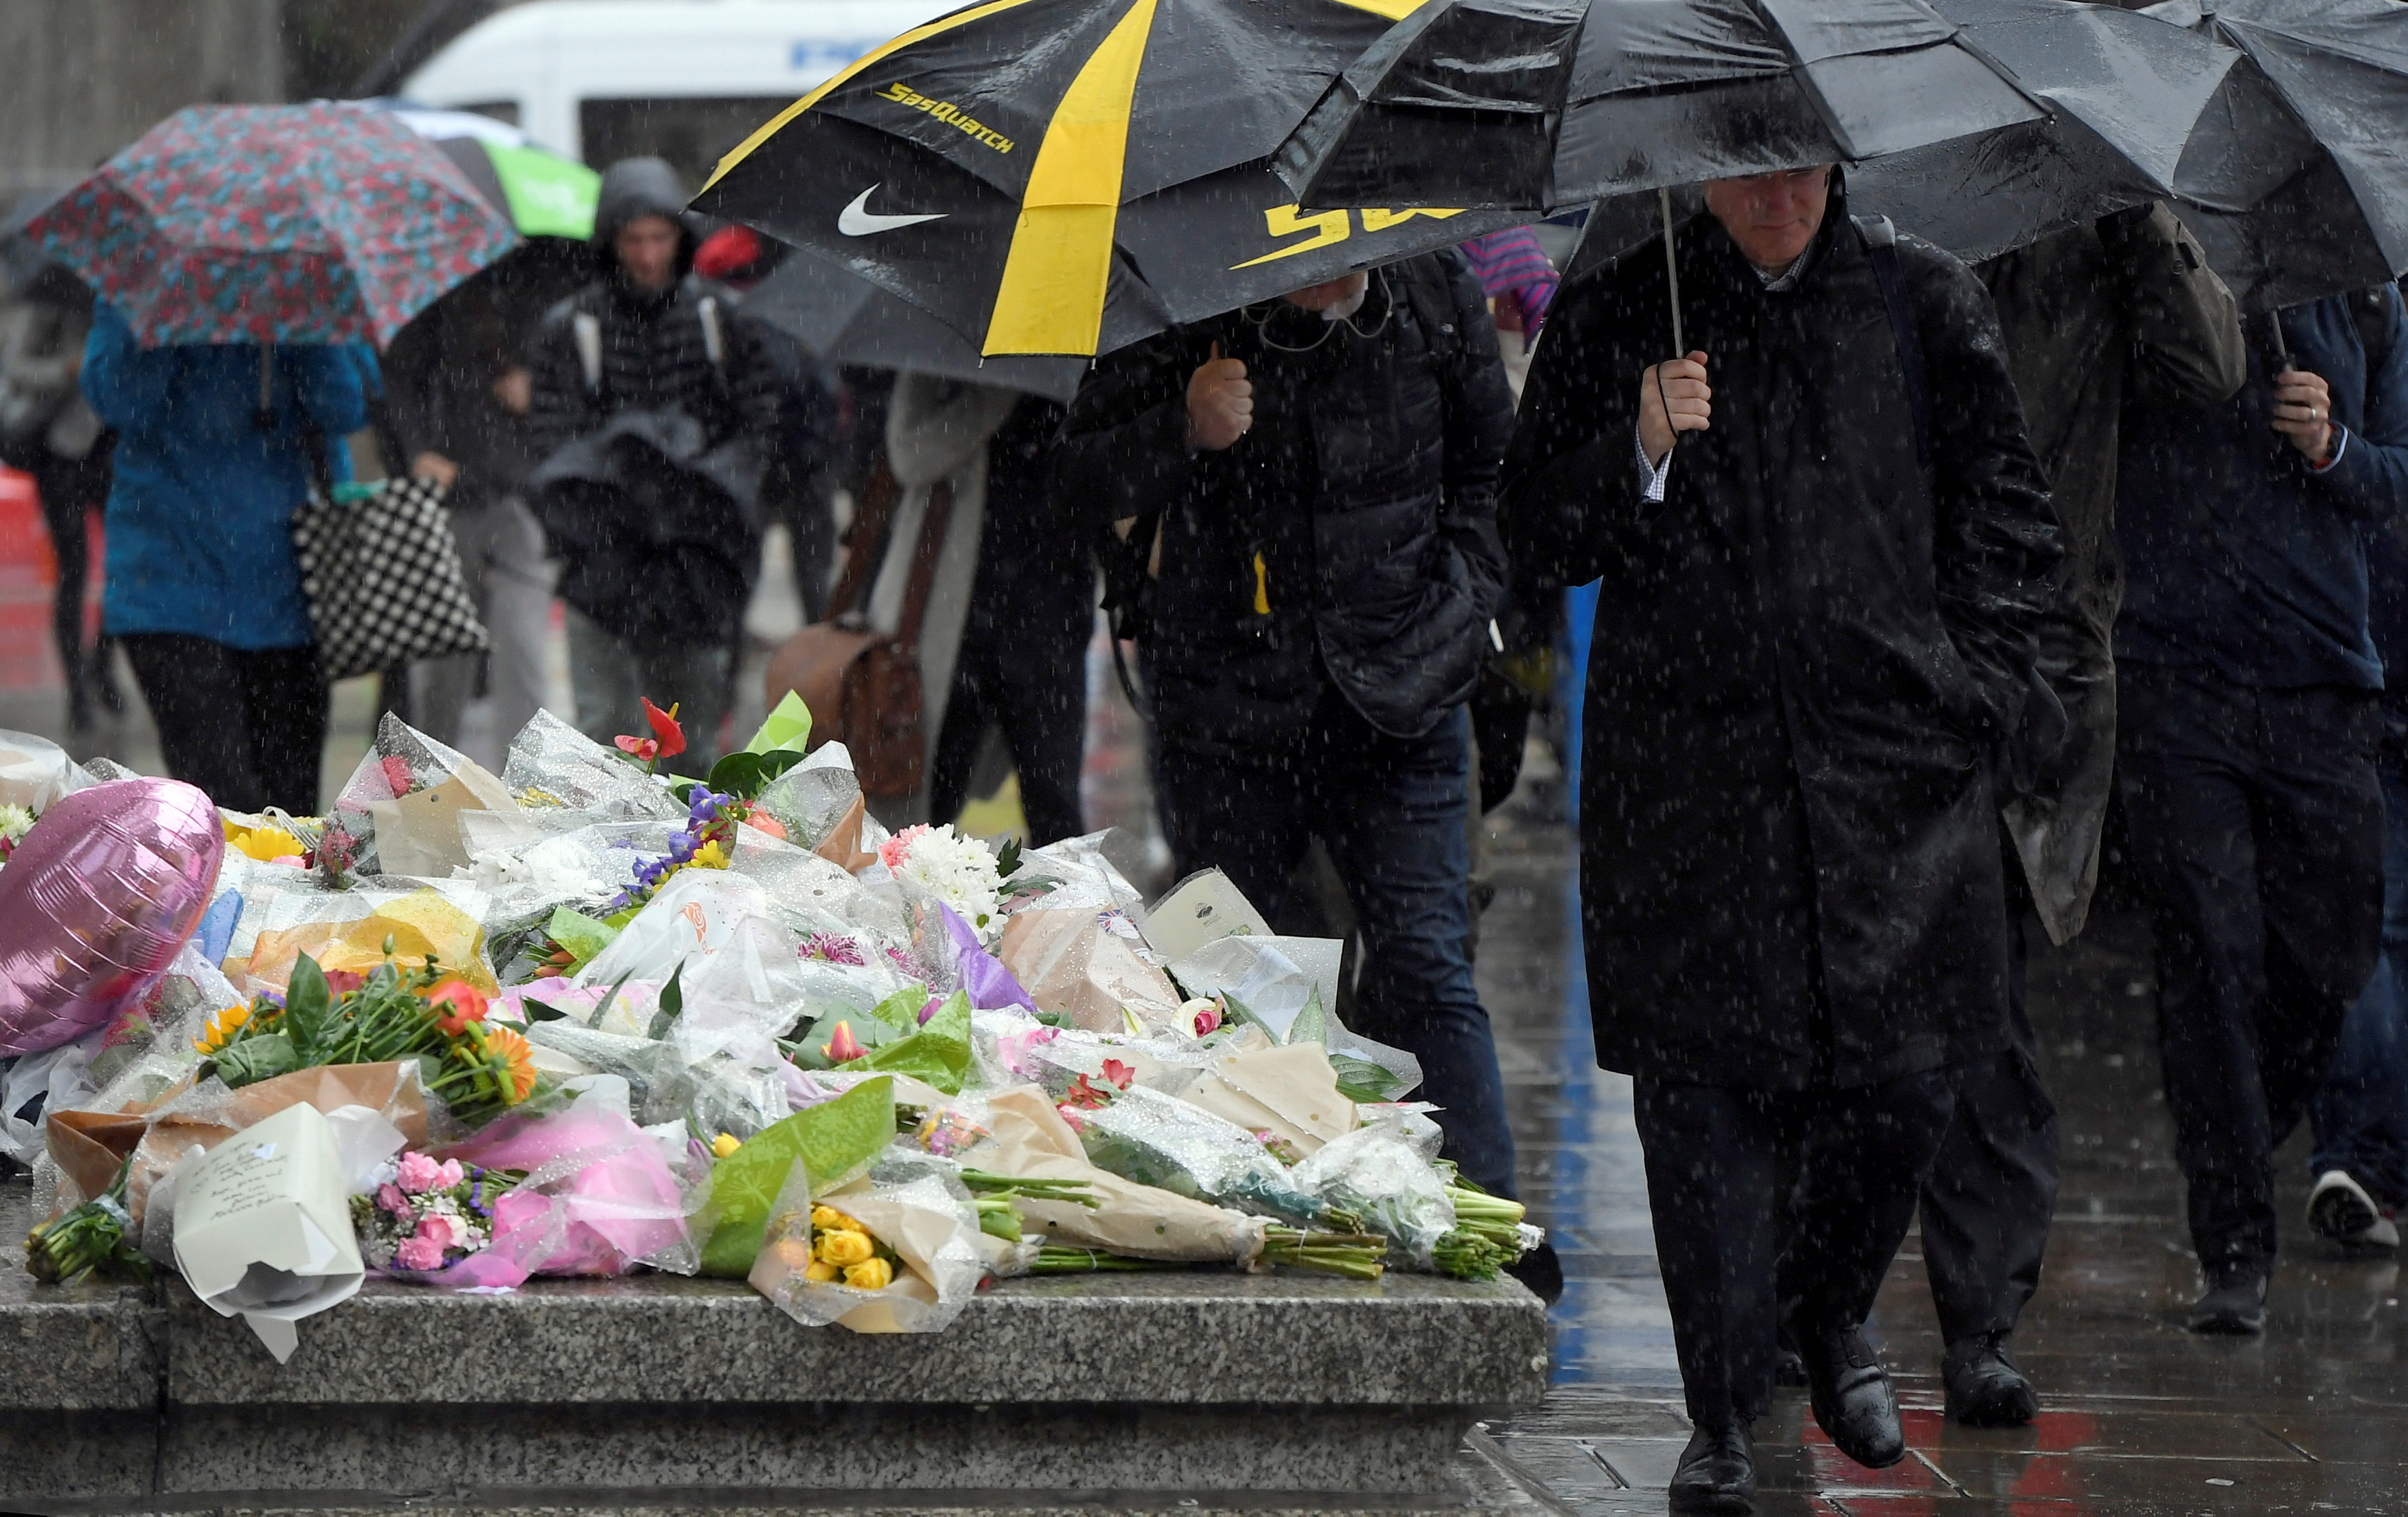 Pedestrians carry umbrellas as they walk past floral tributes to the victims of the recent attack at London Bridge and Borough Market, in central London, Britain June 6, 2017. REUTERS/Toby Melville